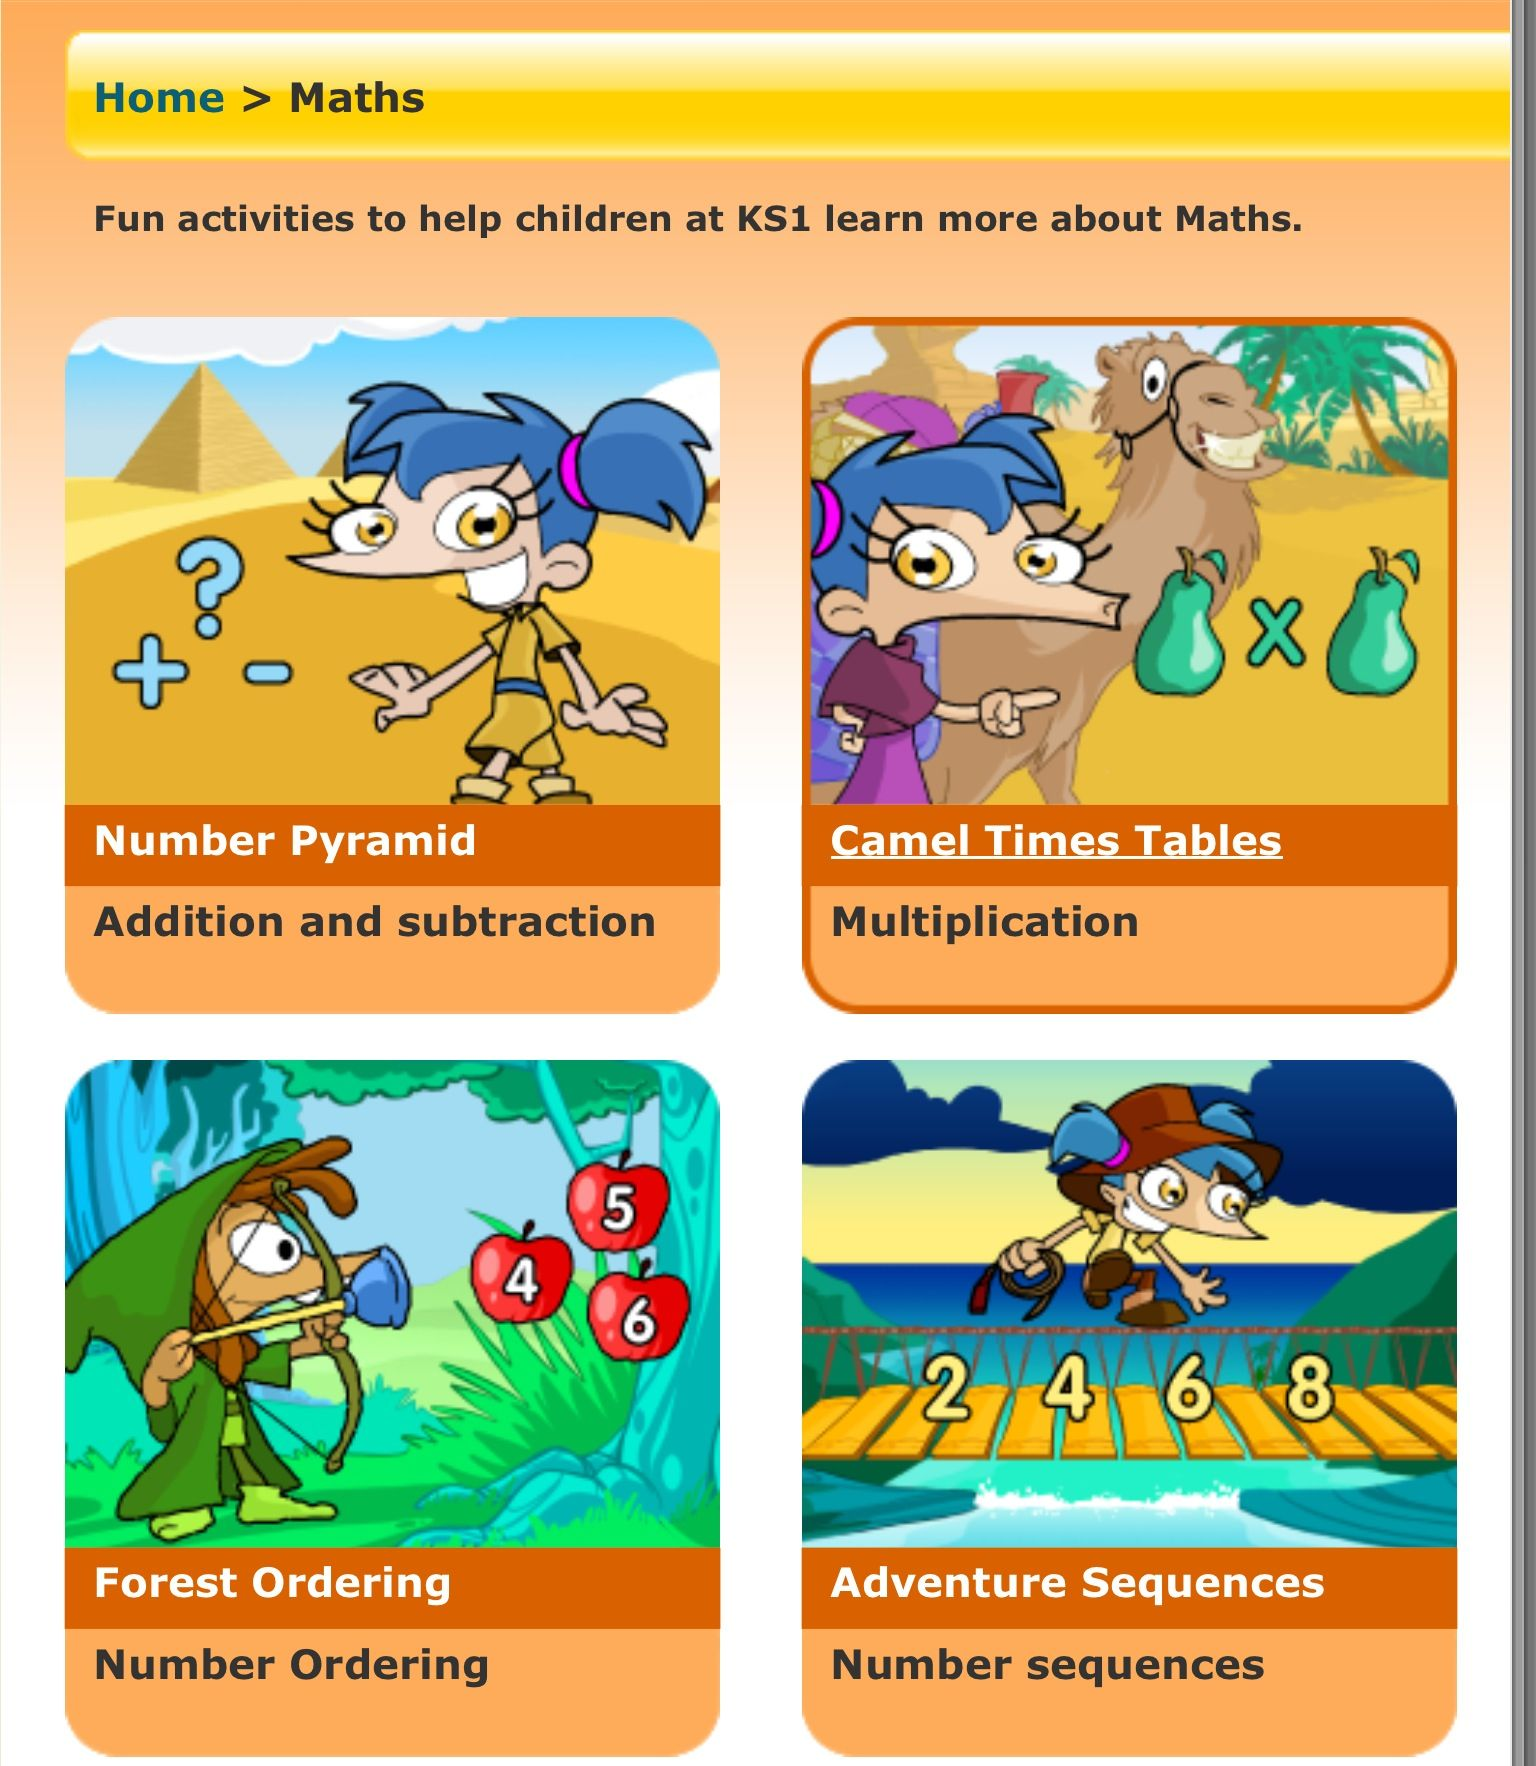 Pin by Gemma O'Donoghue on School Maths Ks1 maths, Kids